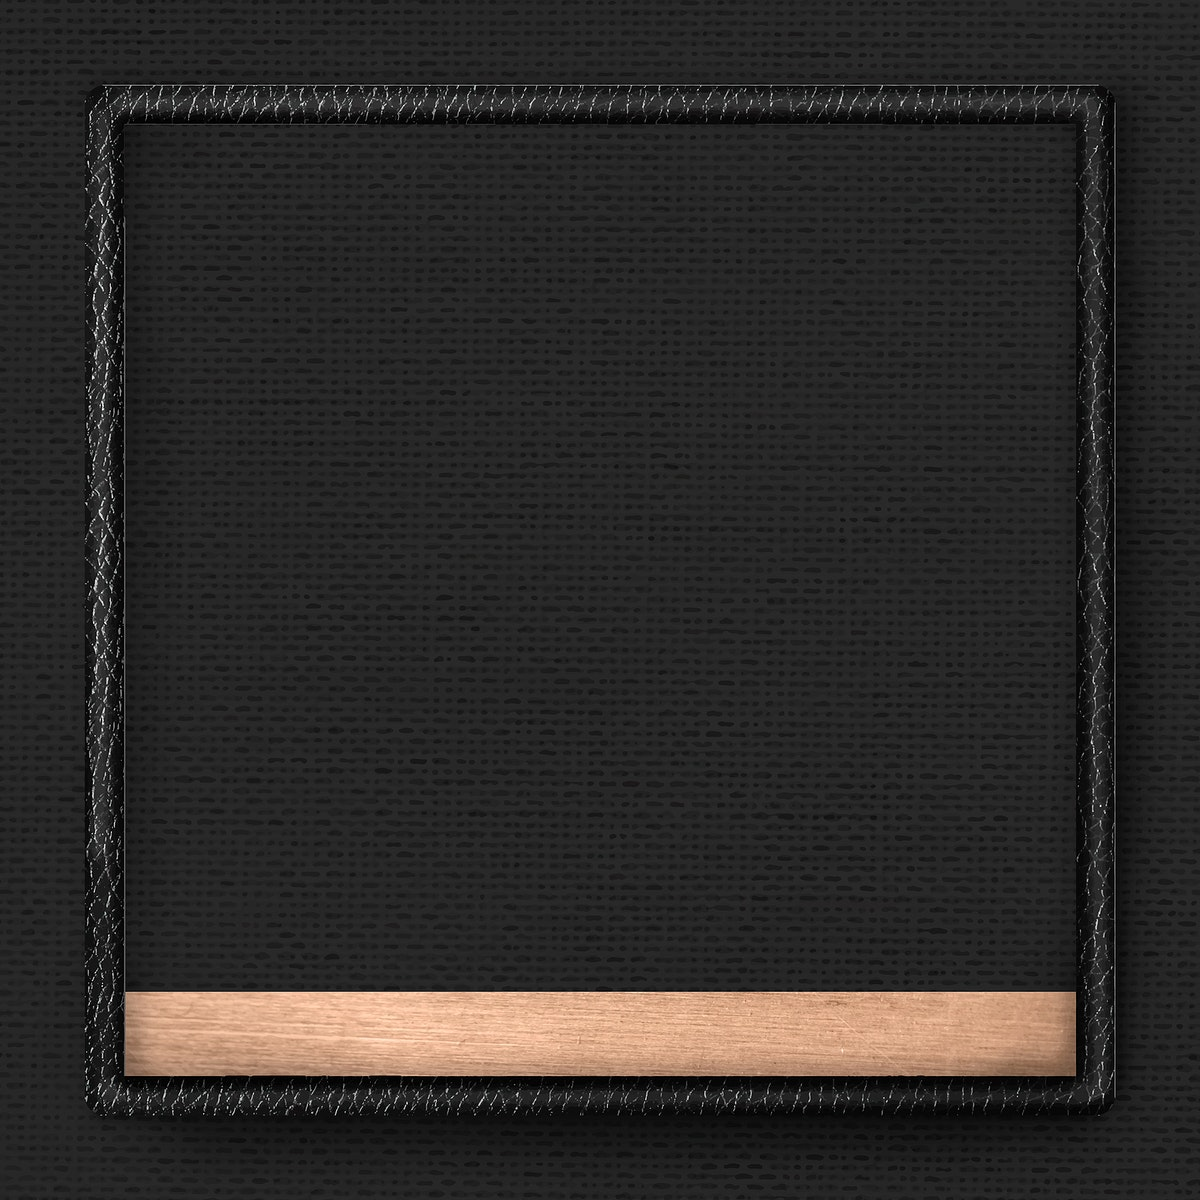 Black leather frame on black fabric texture background vector